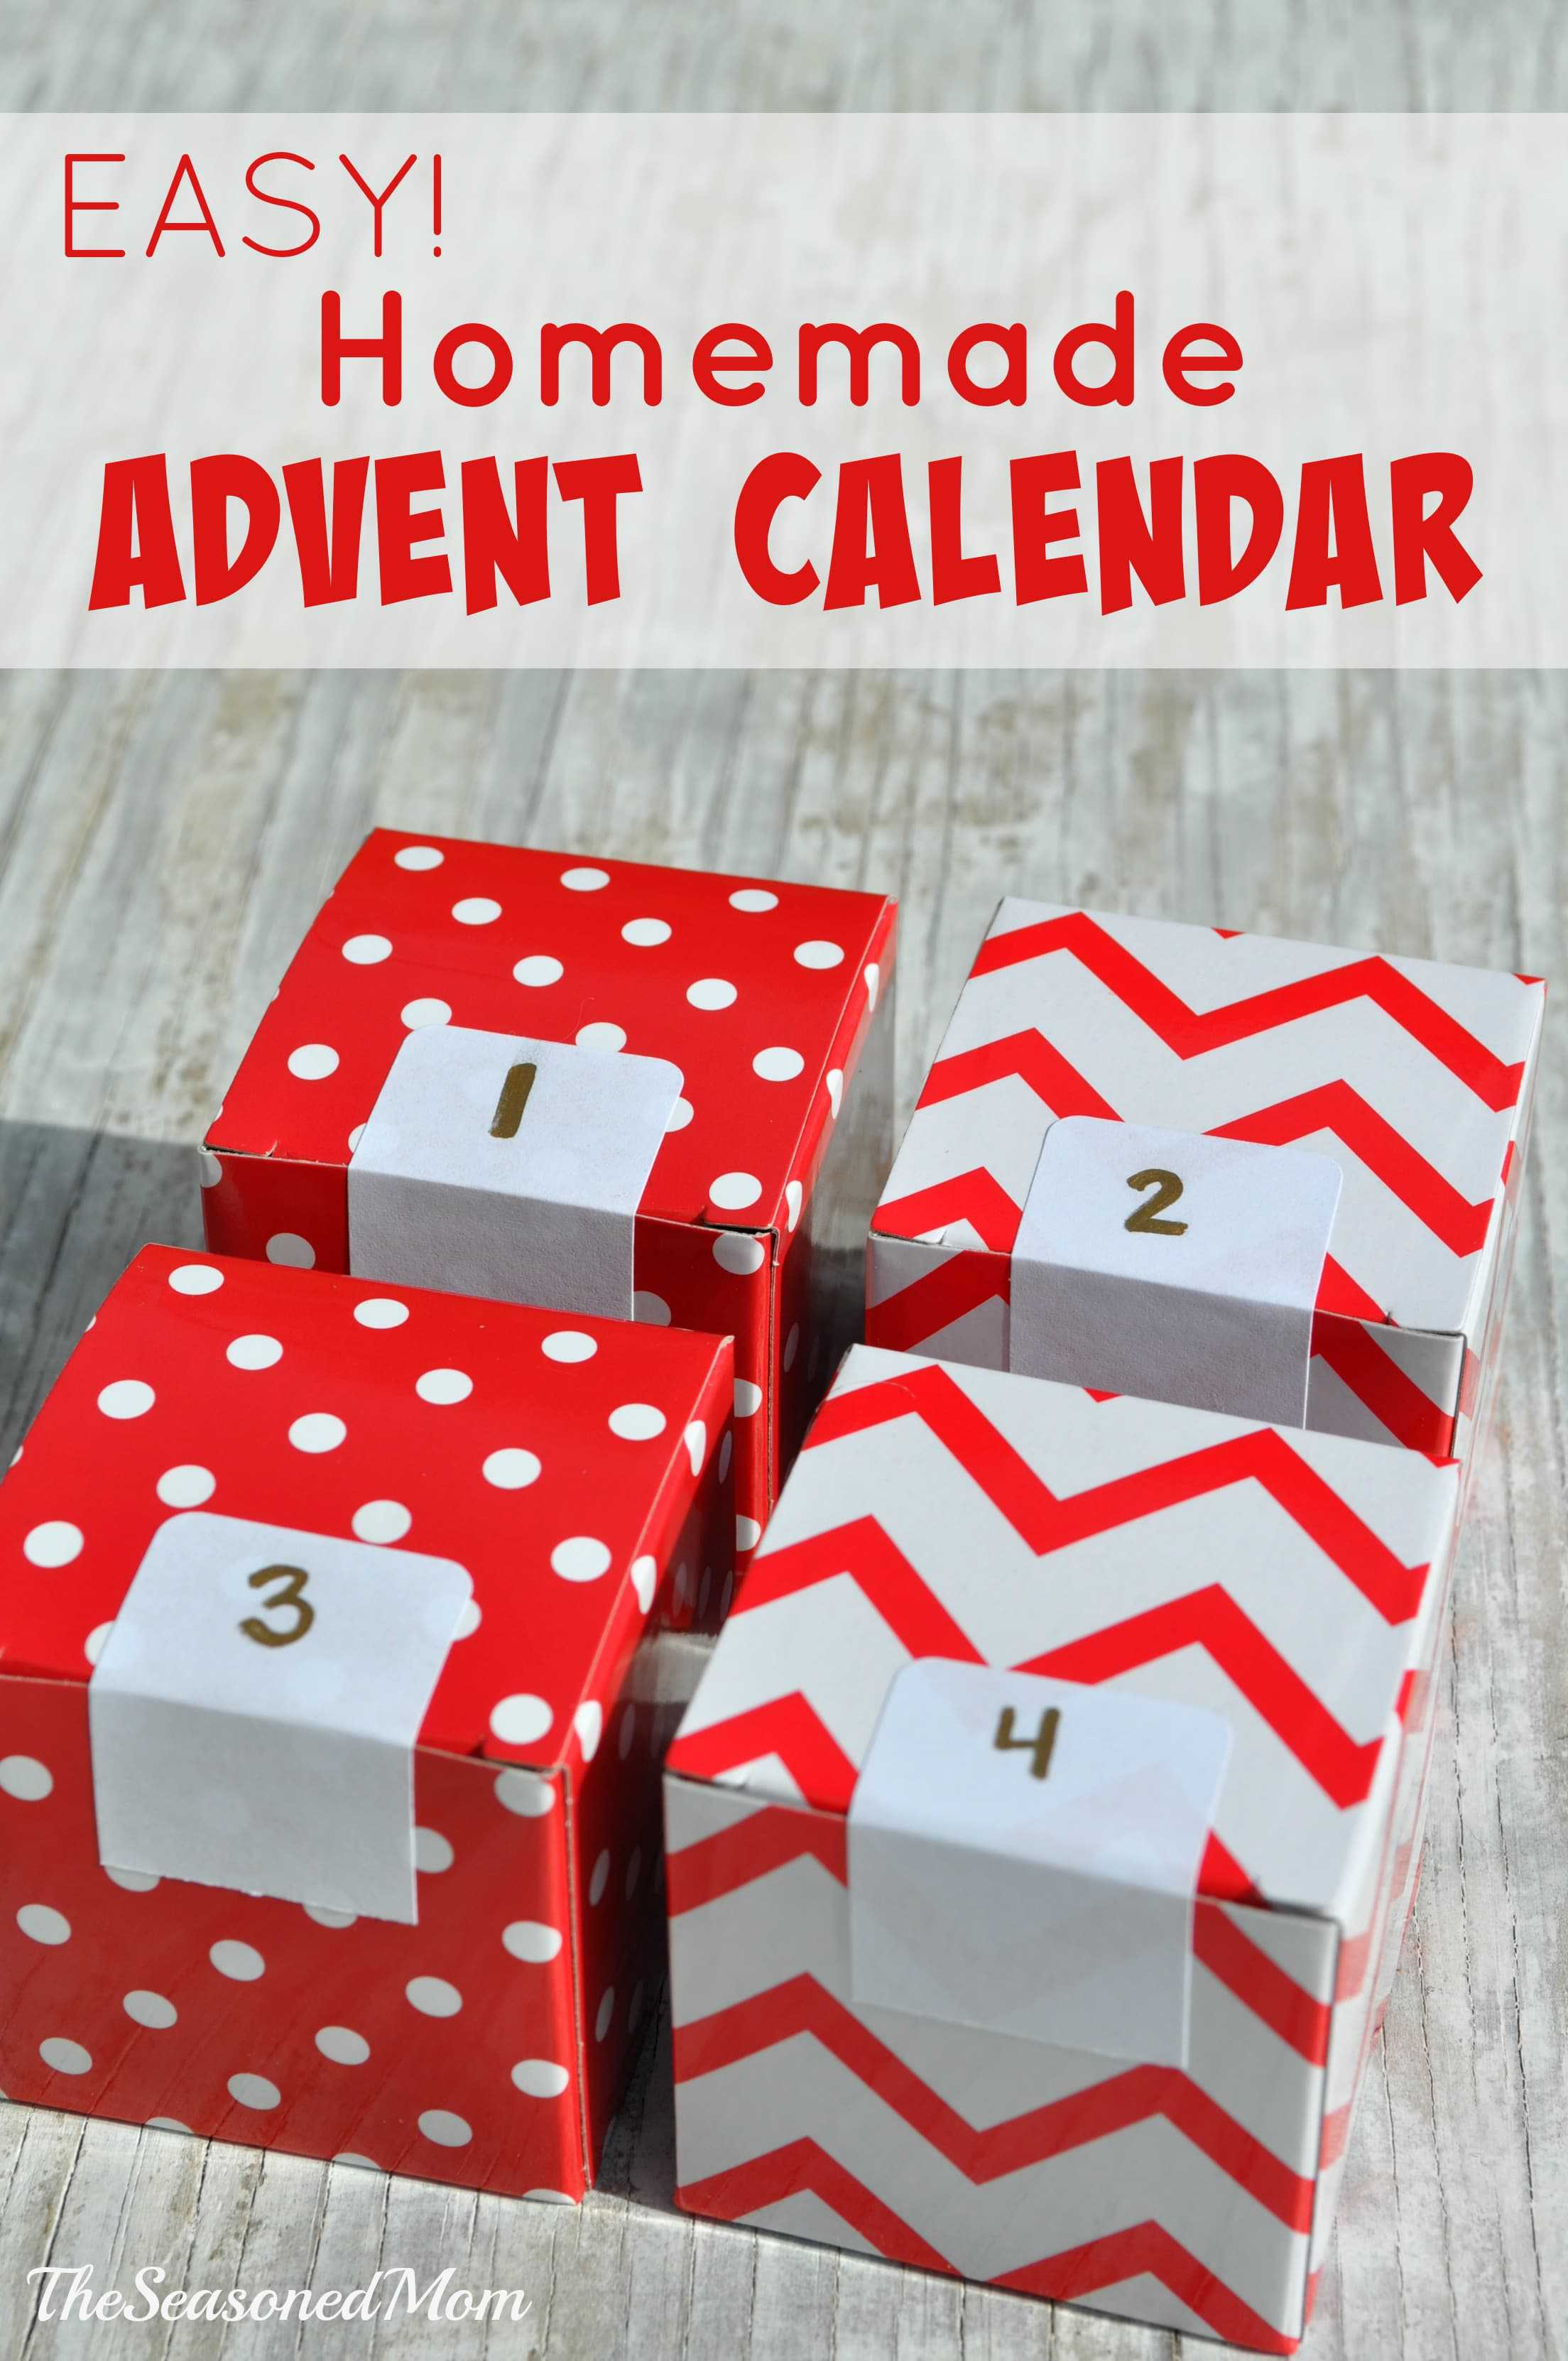 Advent Calendar Homemade : Easy homemade advent calendar the seasoned mom